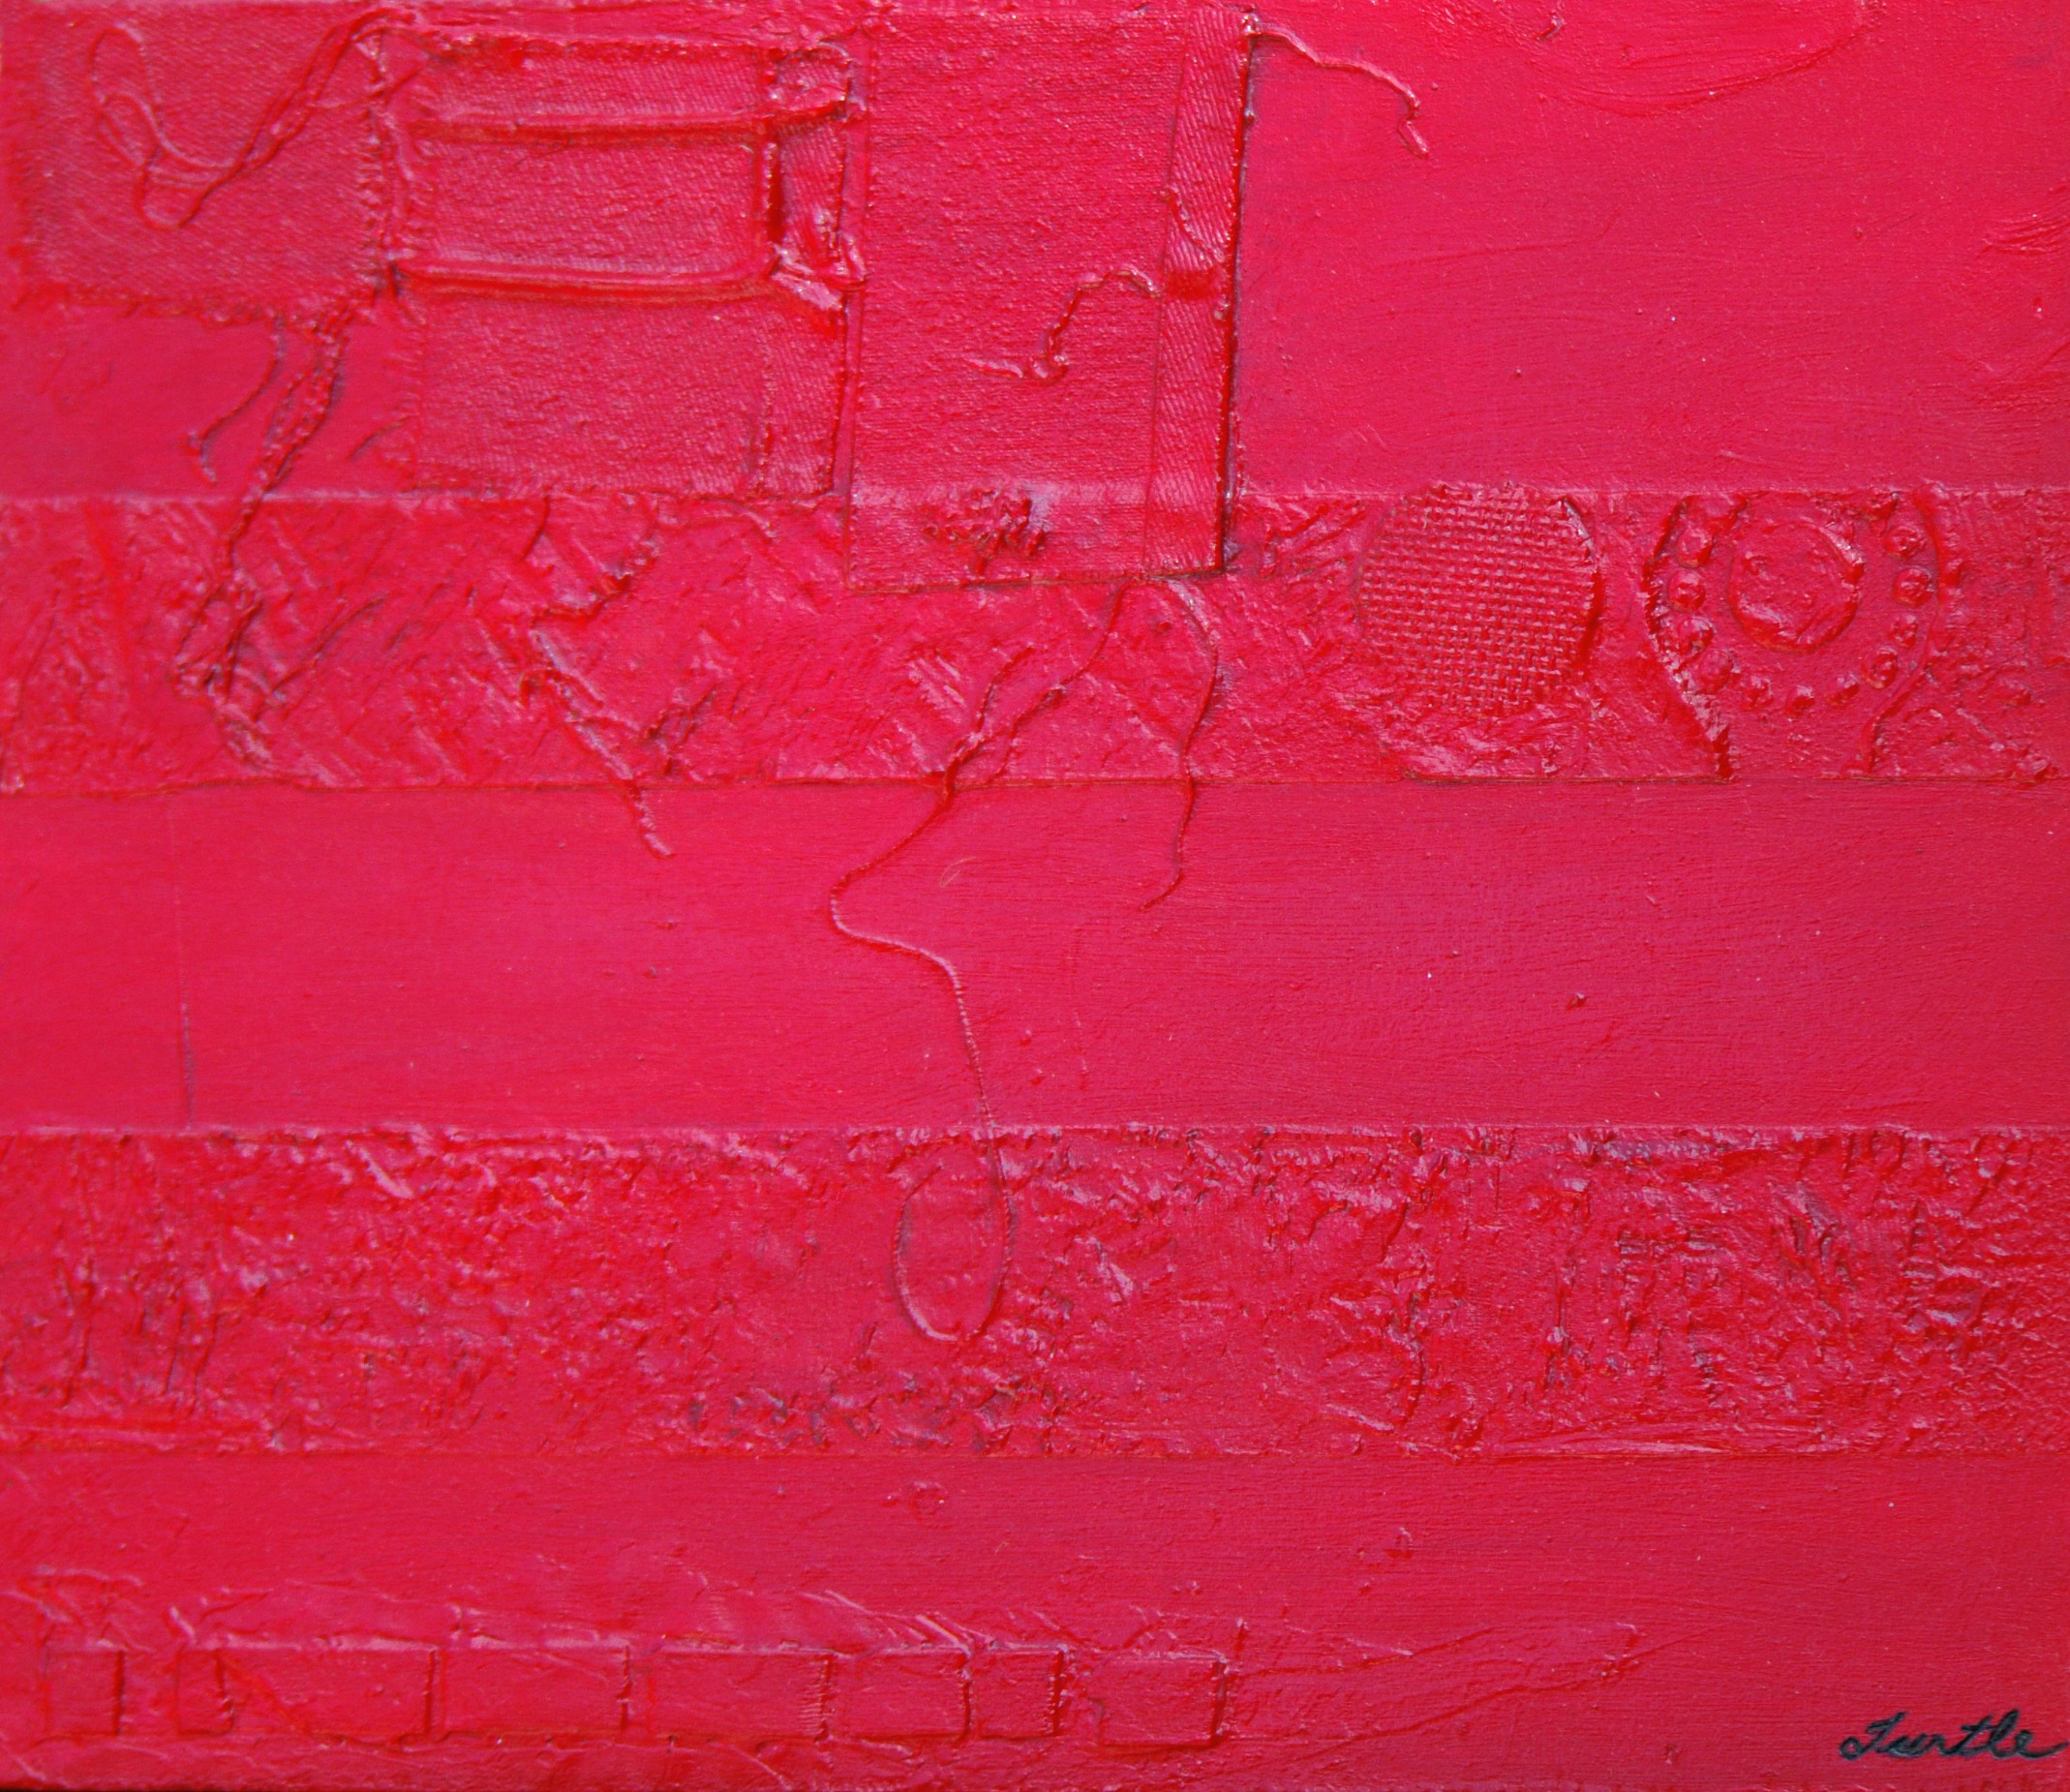 Title: Seeing Red #22